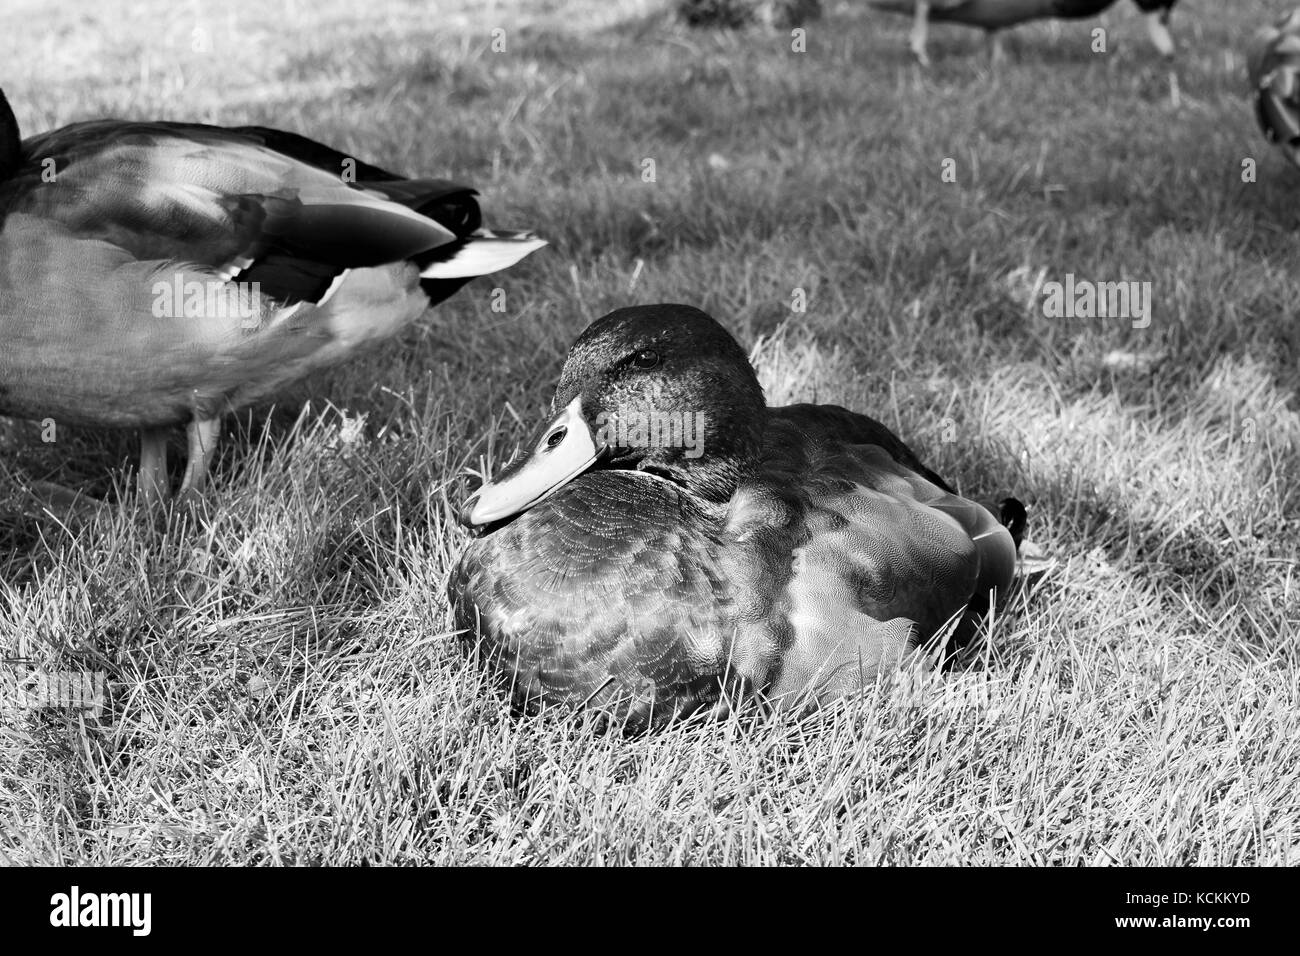 Male duck rests on grass in black and white - Stock Image